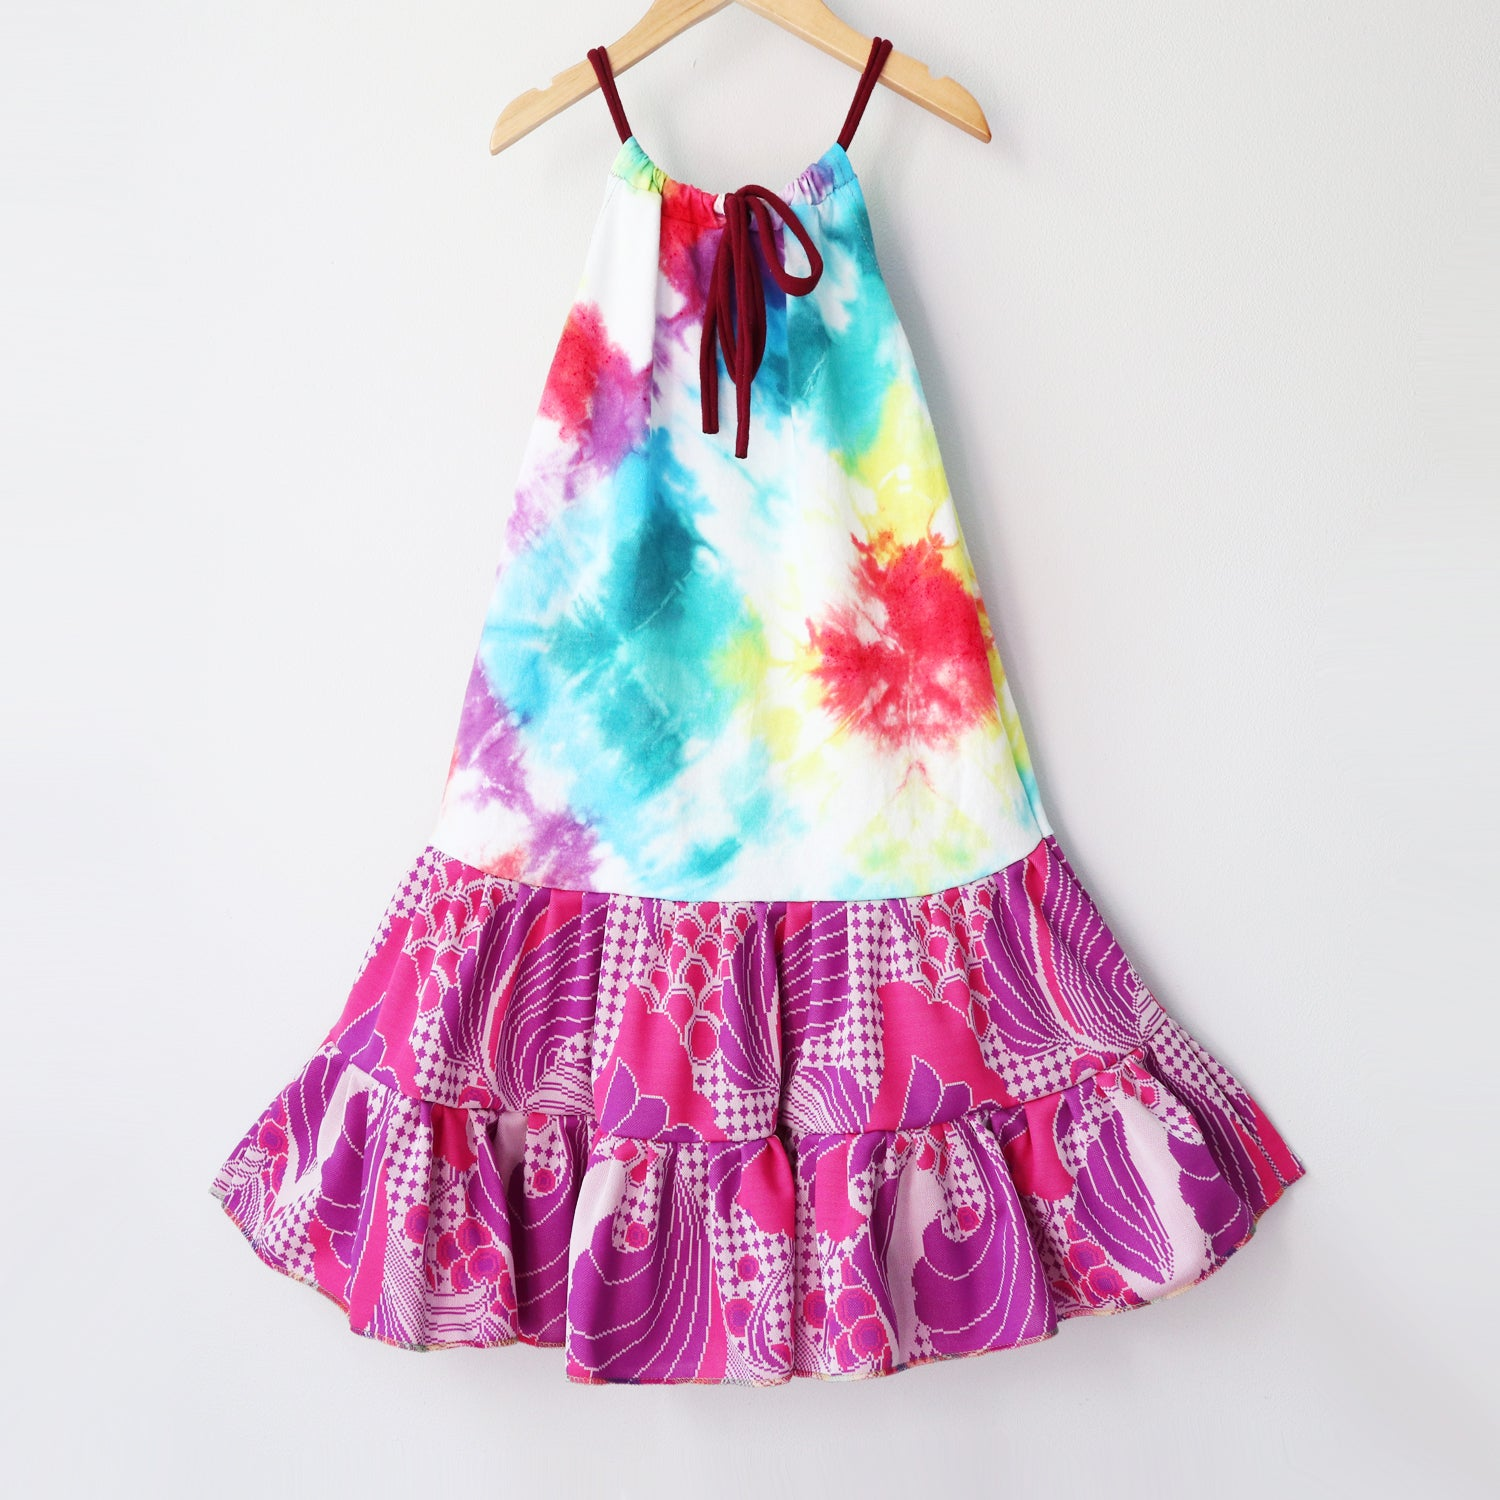 Image of rainbow paisley tiedye pink purple 8/10 vintage fabric tie drawstring swing dress courtneycourtney